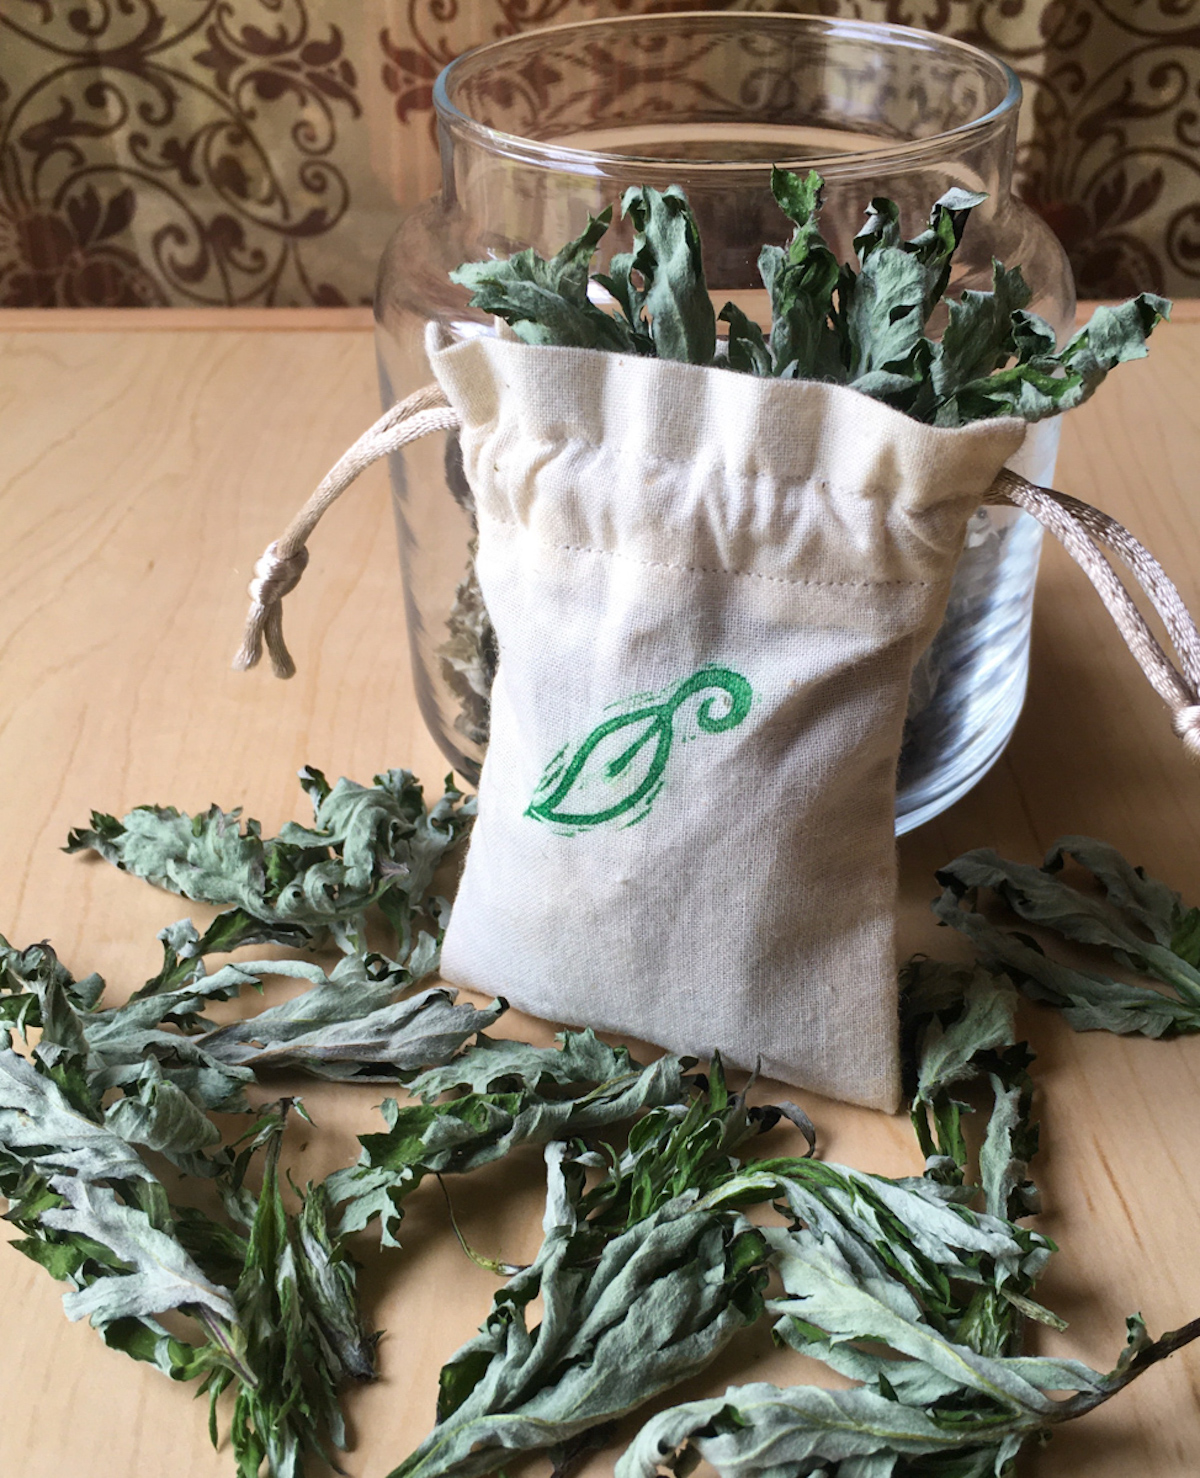 Learn how to use mugwort in a dream pillow